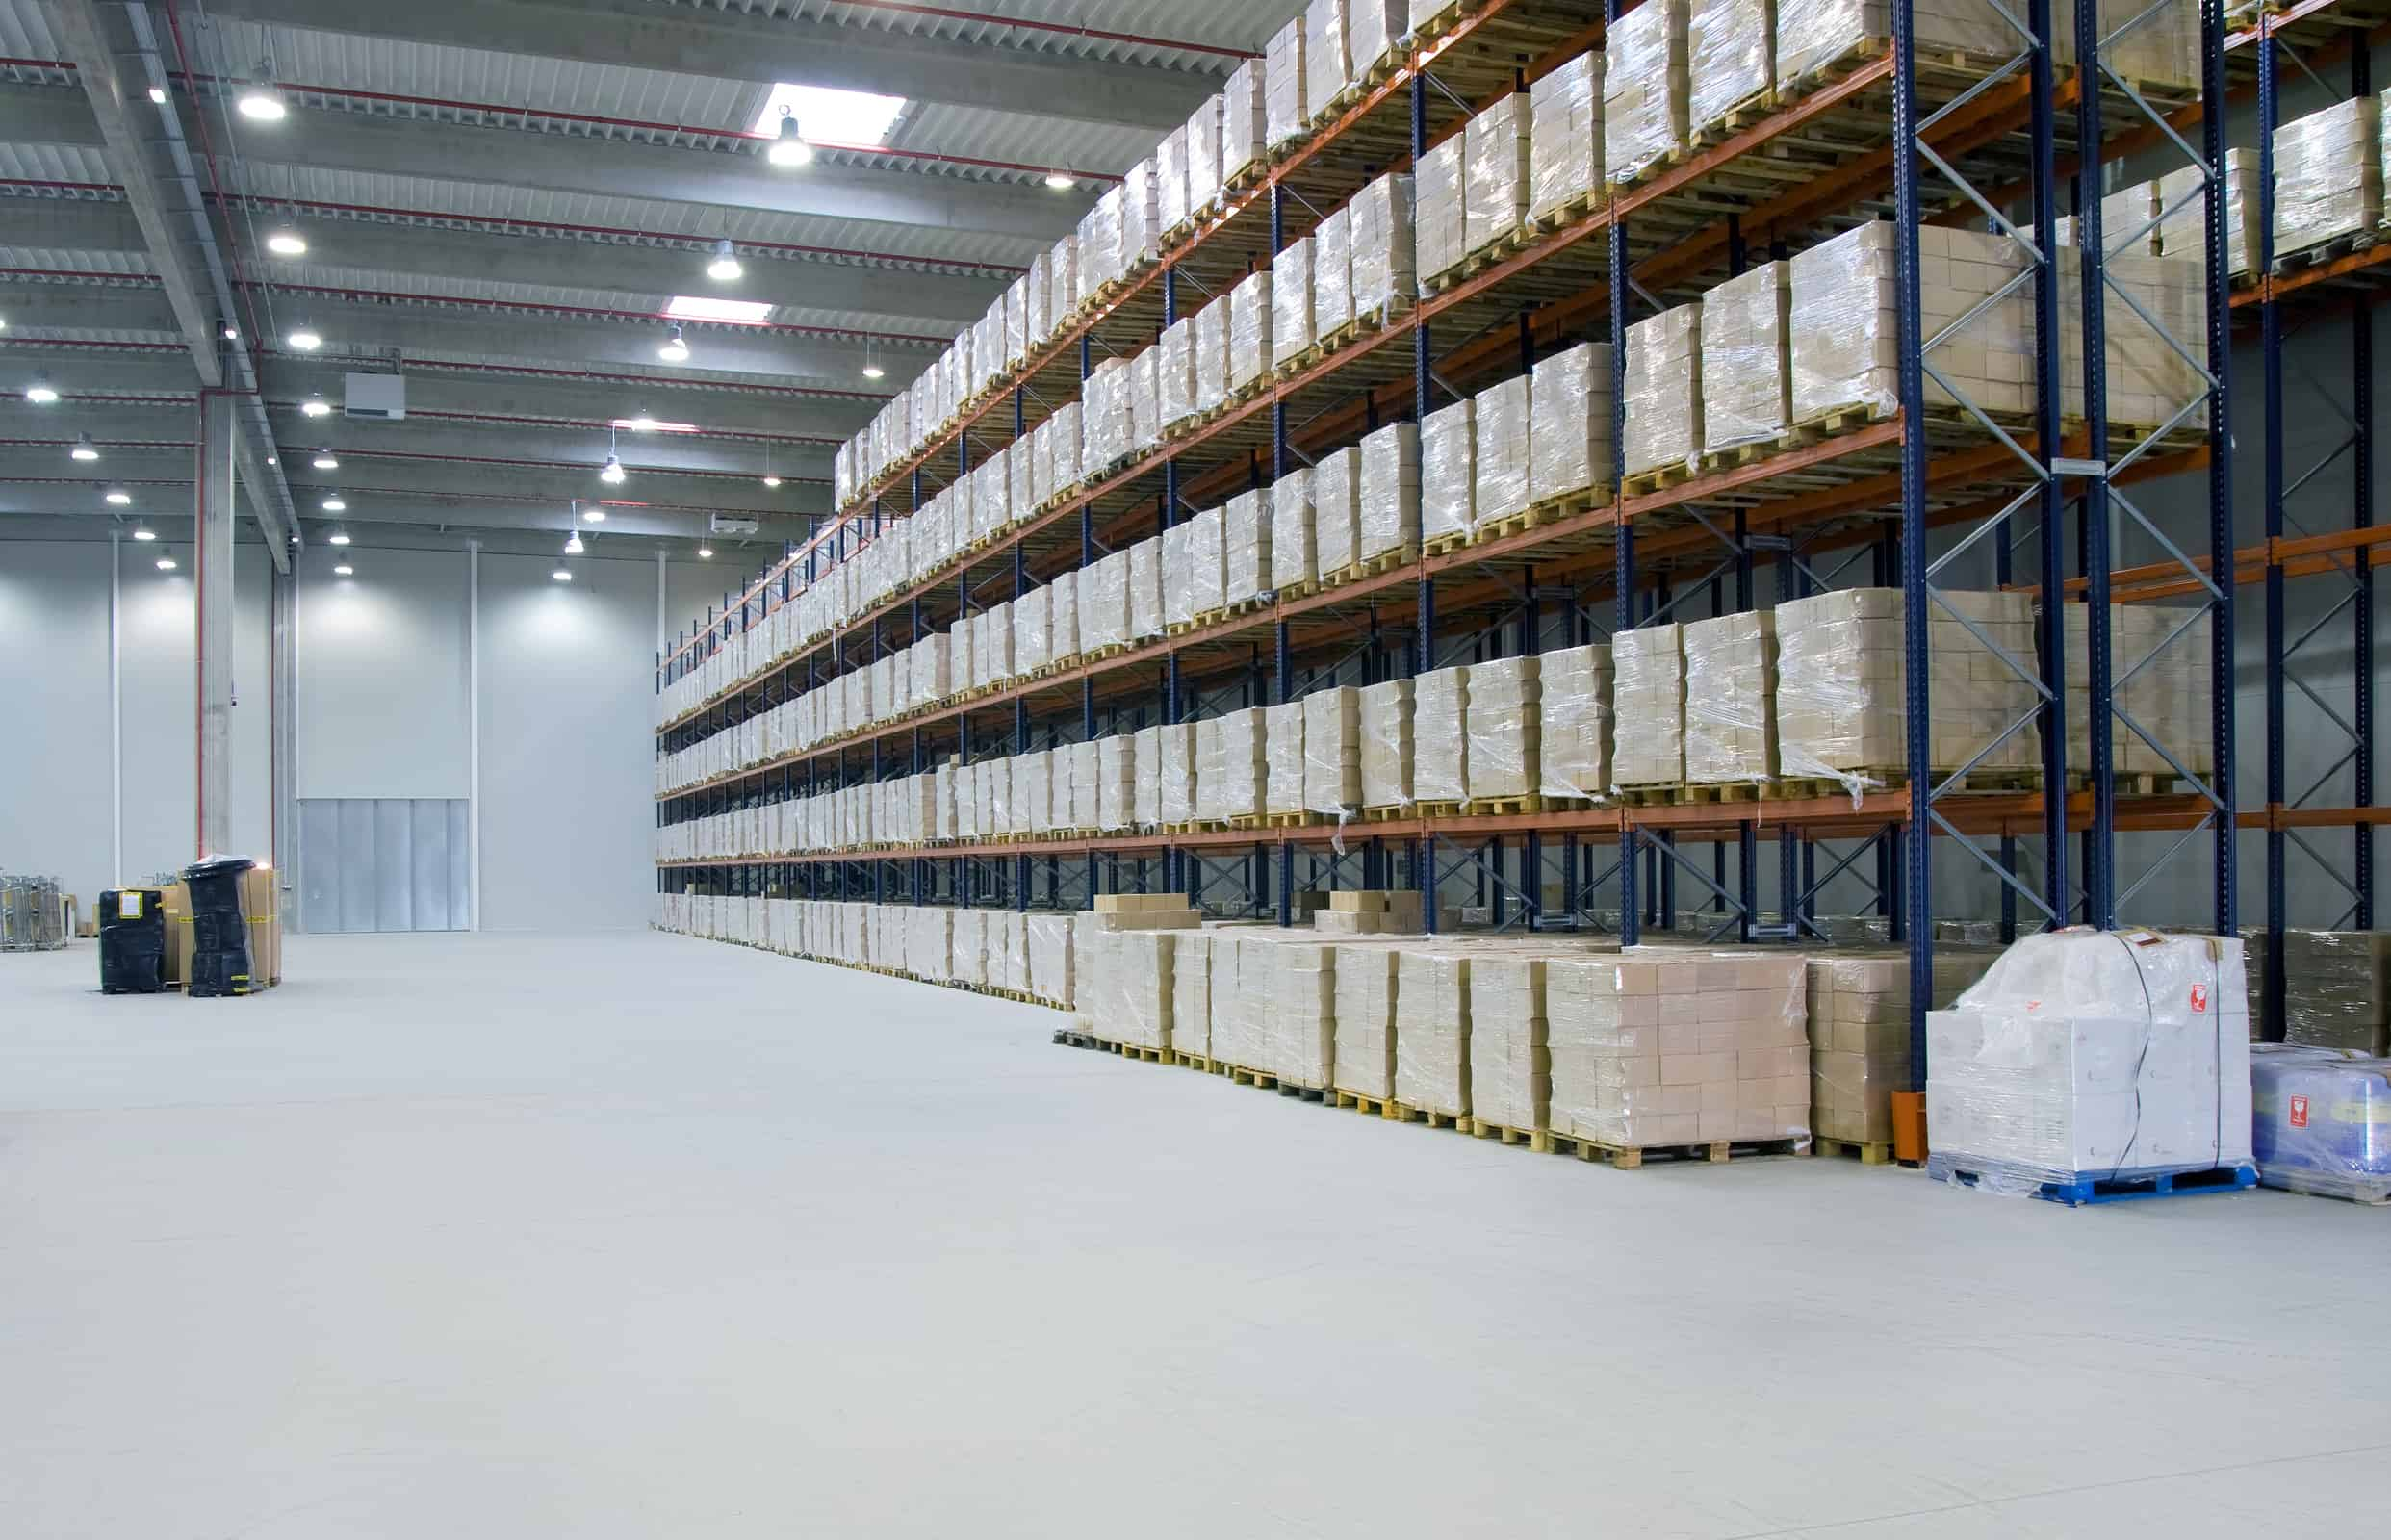 ... cold storage industry in india Fcsai seeks to unite cold storage industry of india and gives & Cold storage industry in india Term paper Service dzhomeworkwoxs ...